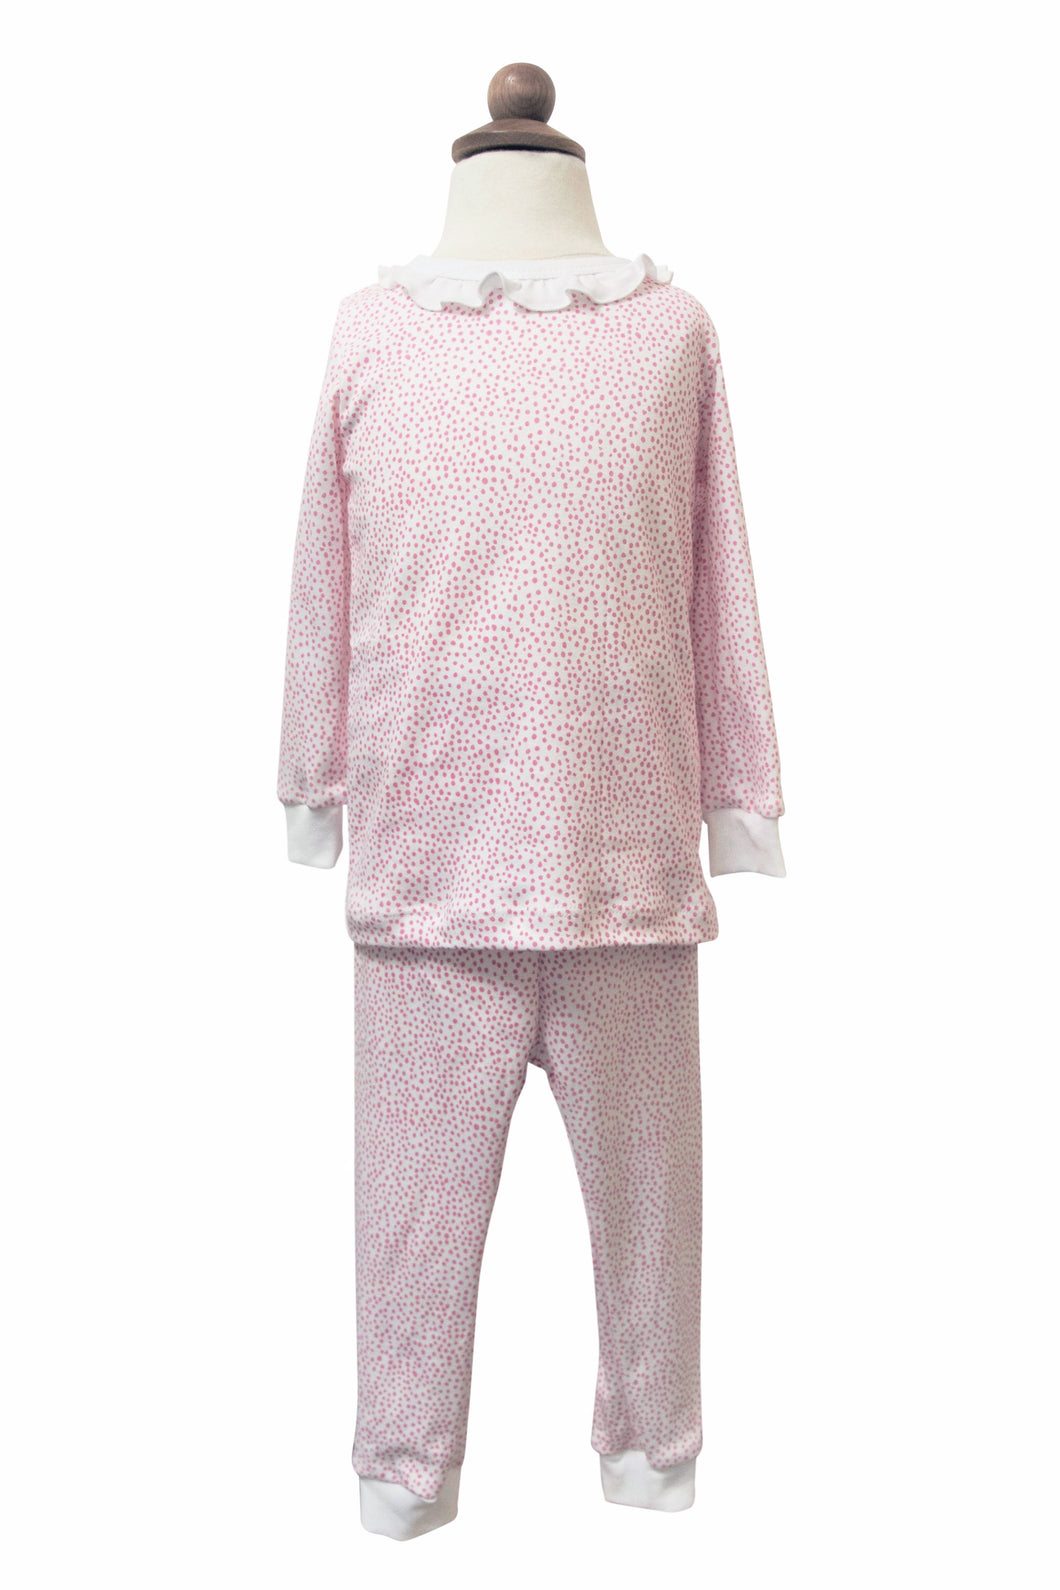 Pink Cheetah Ruffle Neck Pajama Set